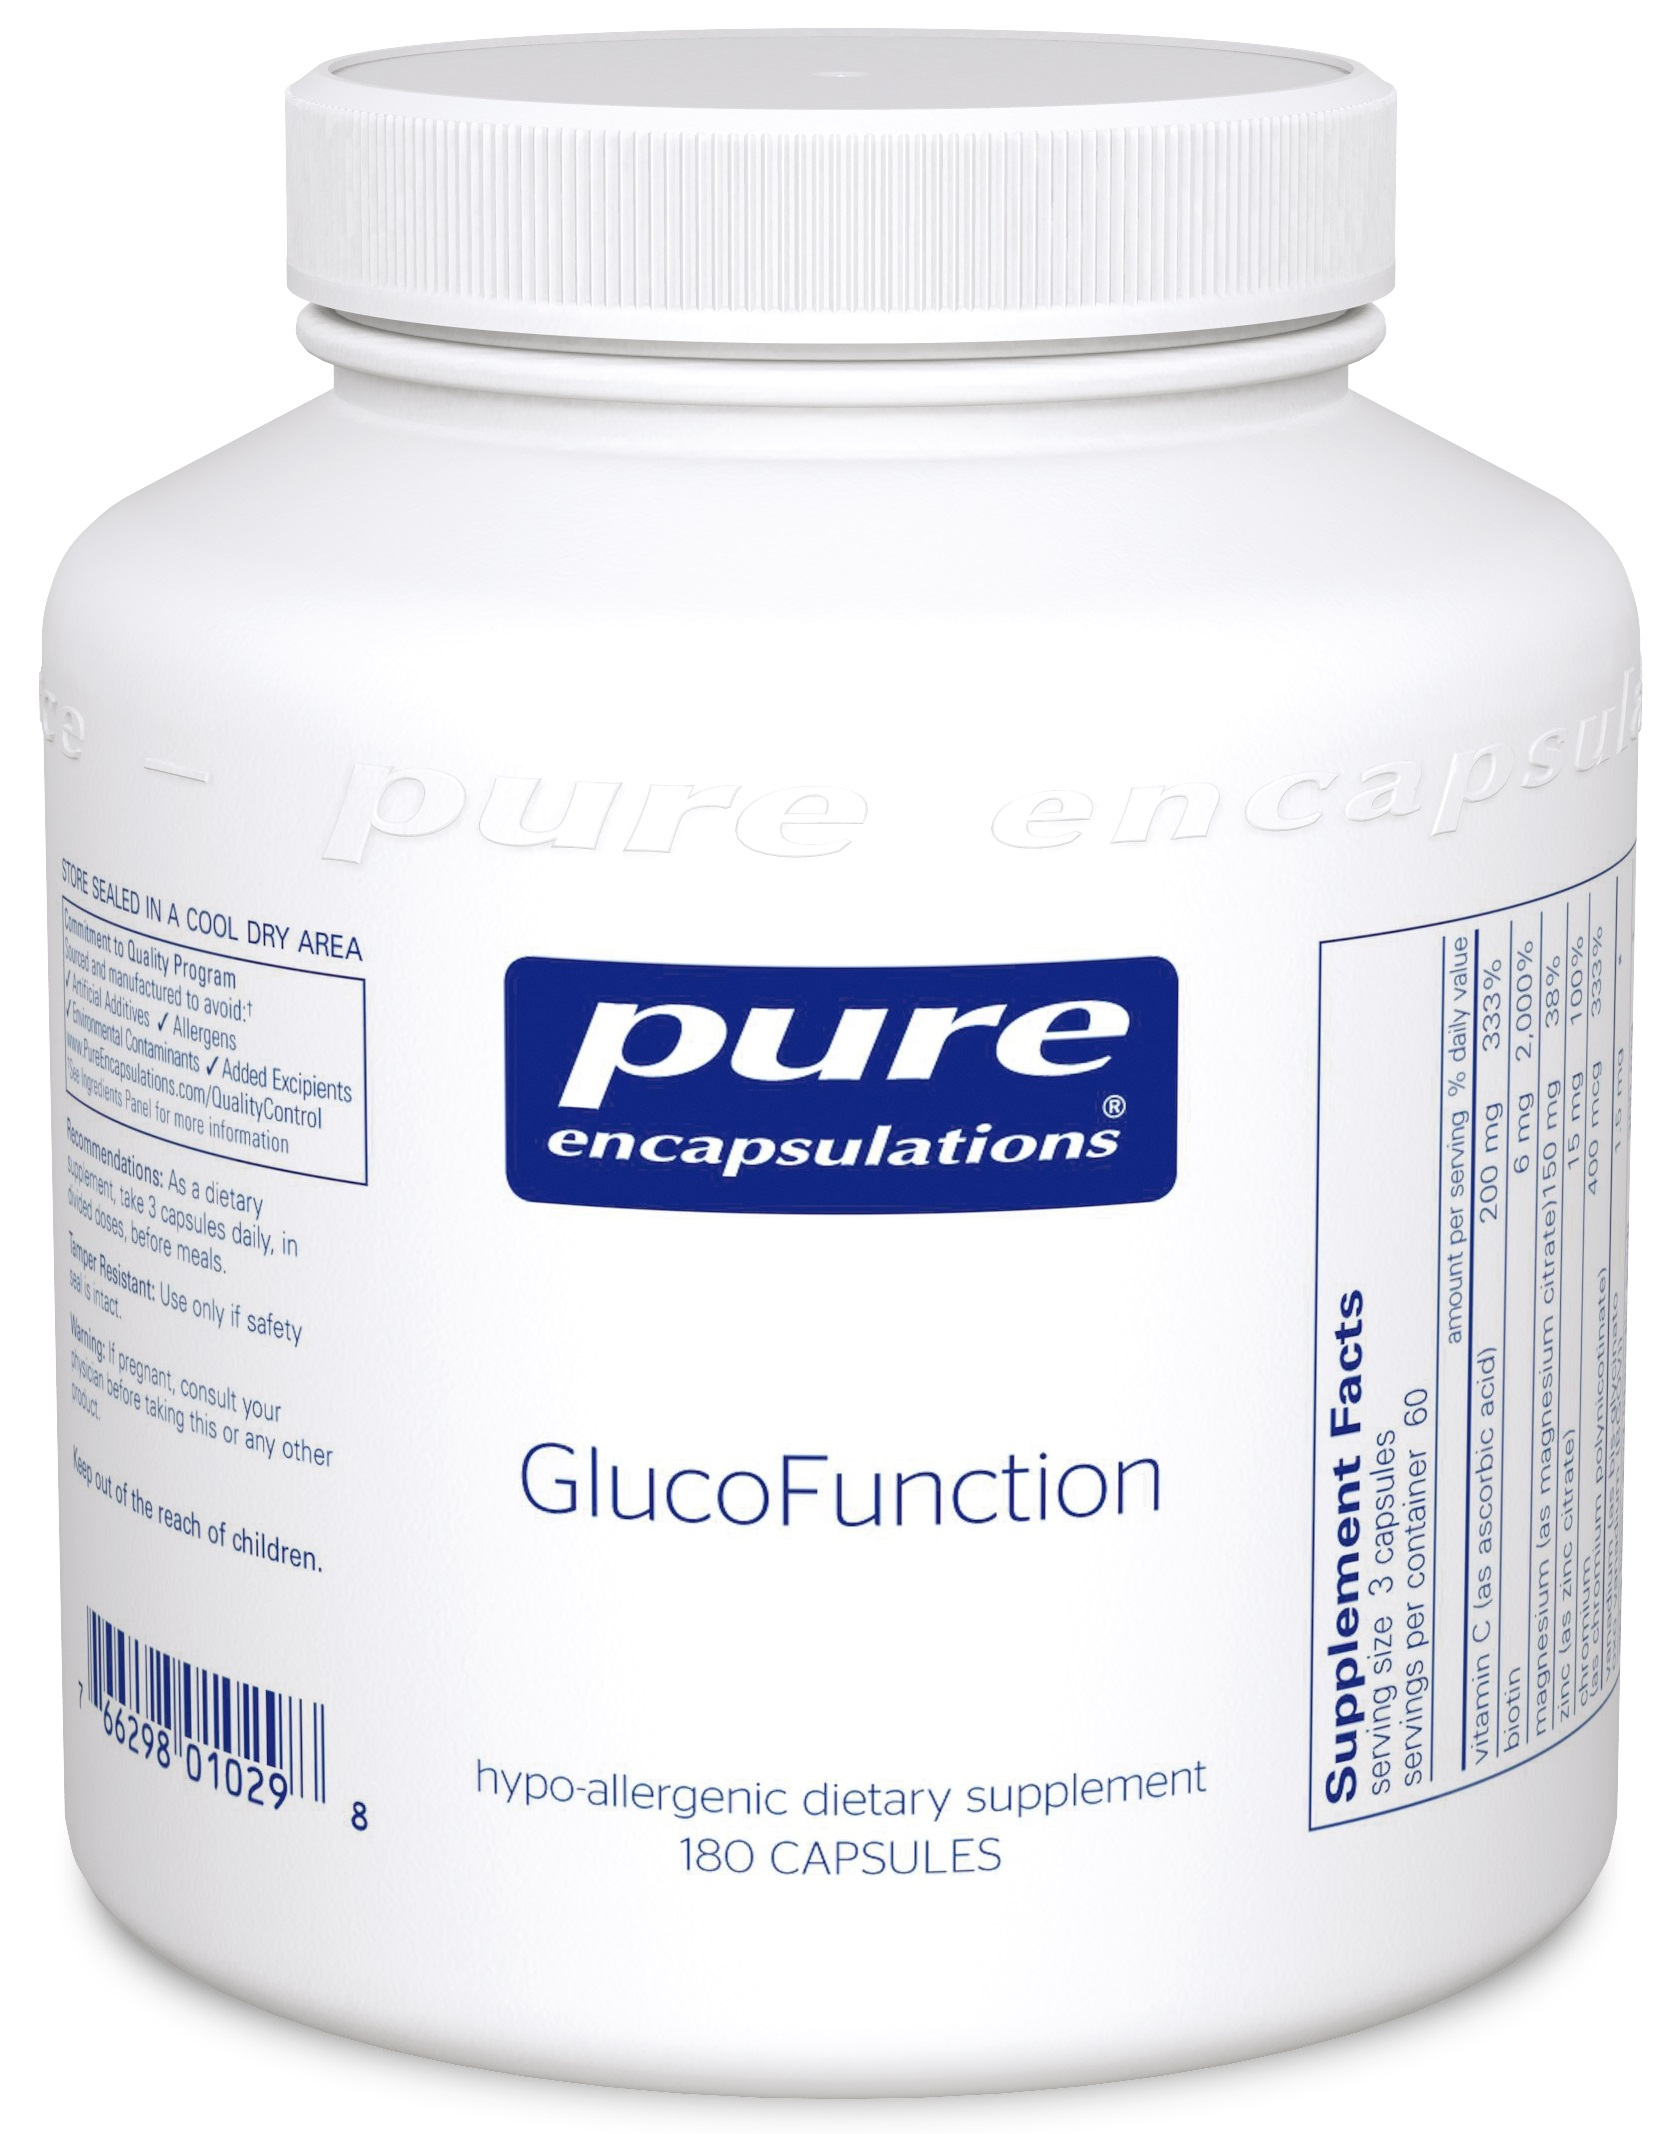 Pure Encapsulations GlucoFunction